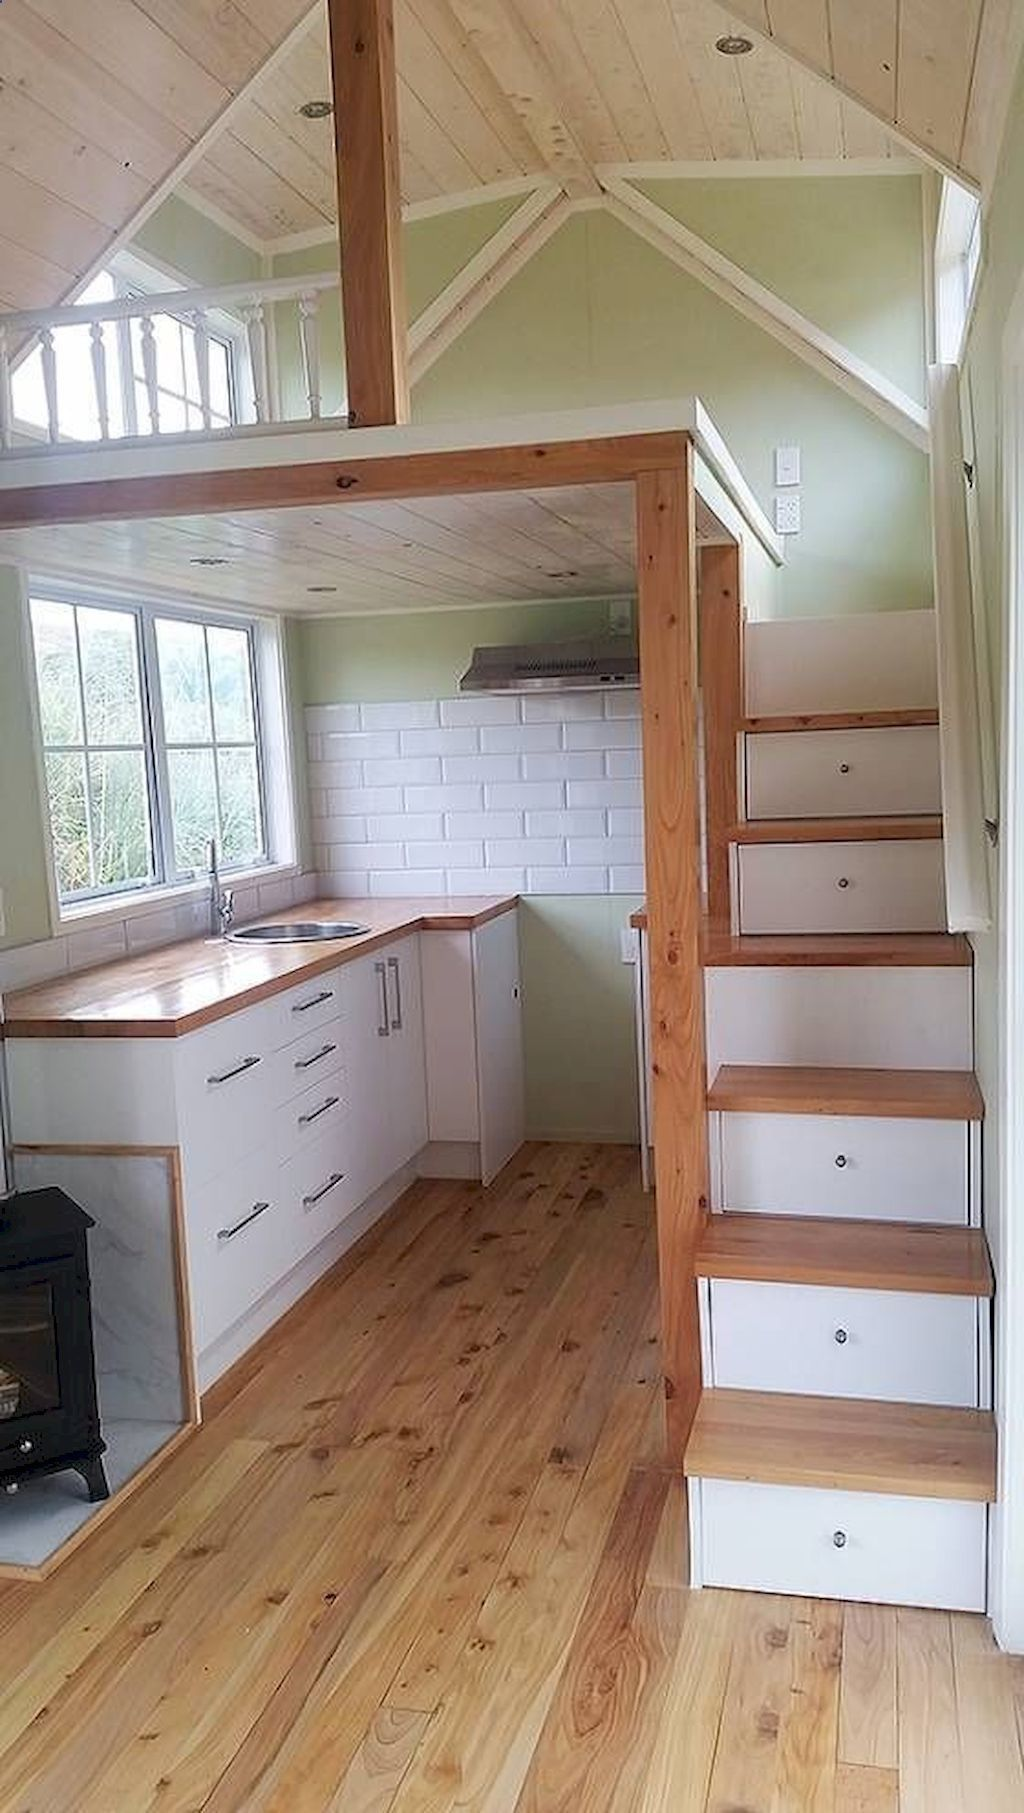 Shed Diy Amazing Loft Stair For Tiny House Ideas 40 Now You Can Build Any Shed In A Weekend Even If You V Tiny House Design Diy Tiny House Tiny House Plans